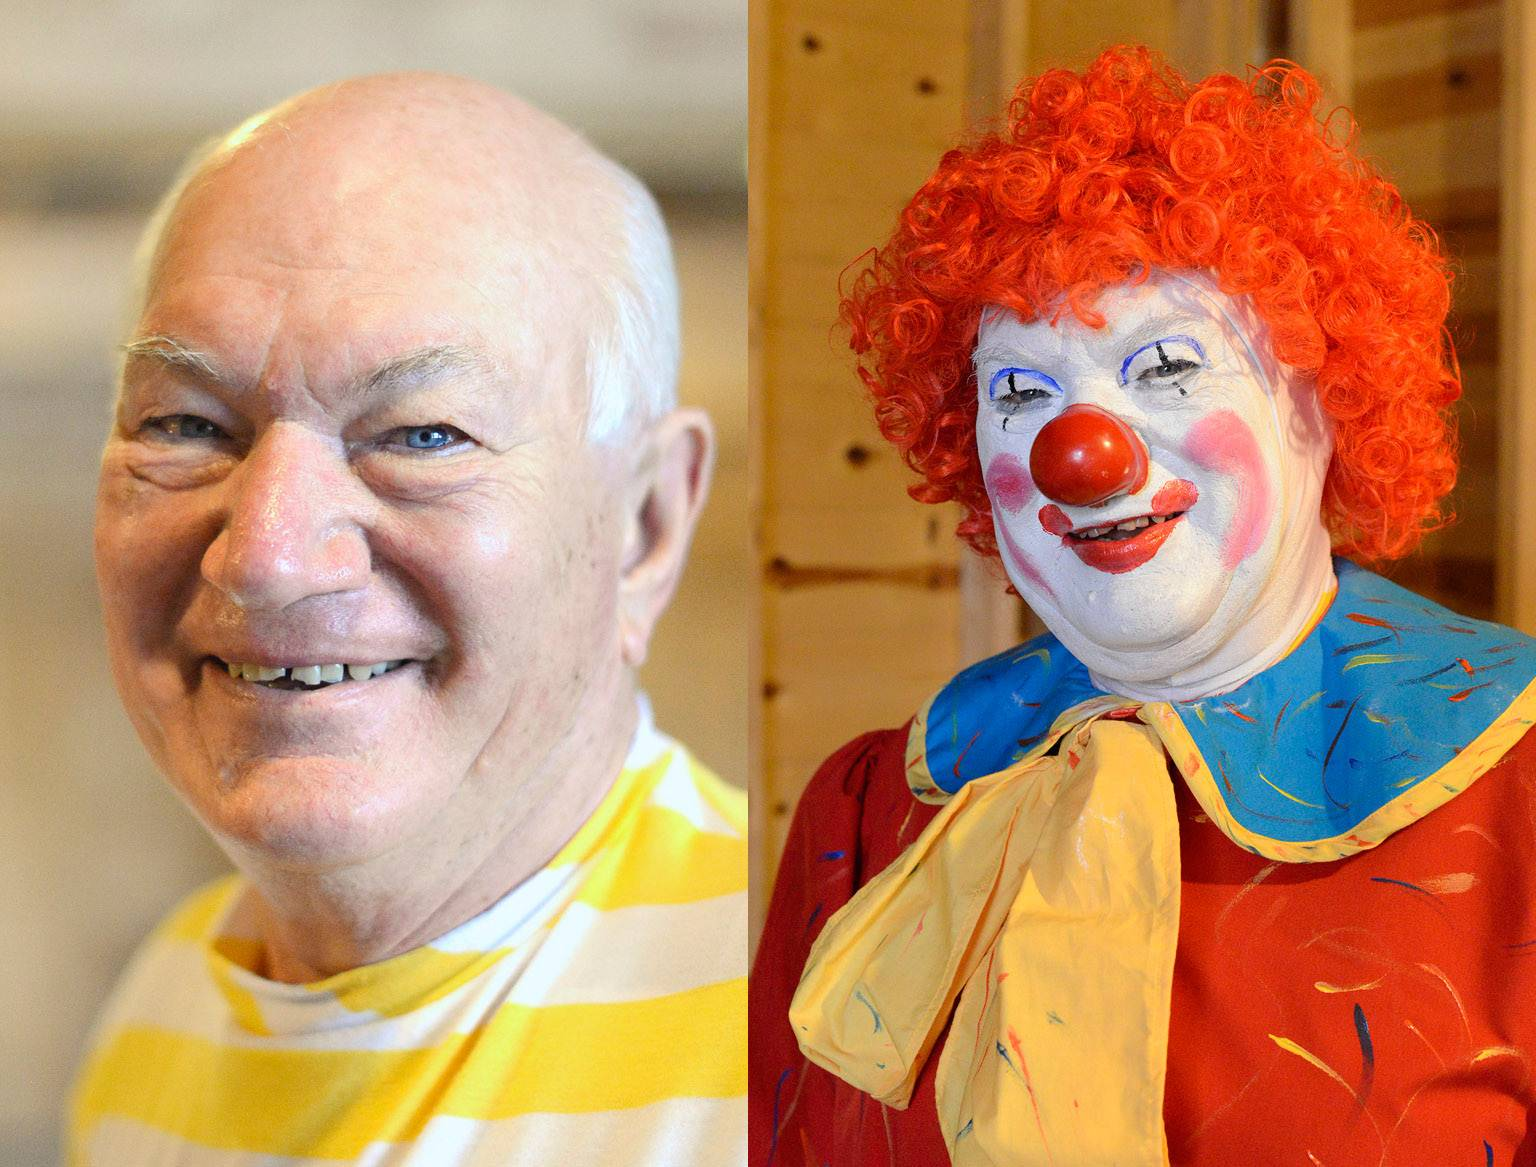 Jack Kramer of Lily Lake said he's taking a break as Polyester the clown, in part, because the perception of some is that clowns are scary.